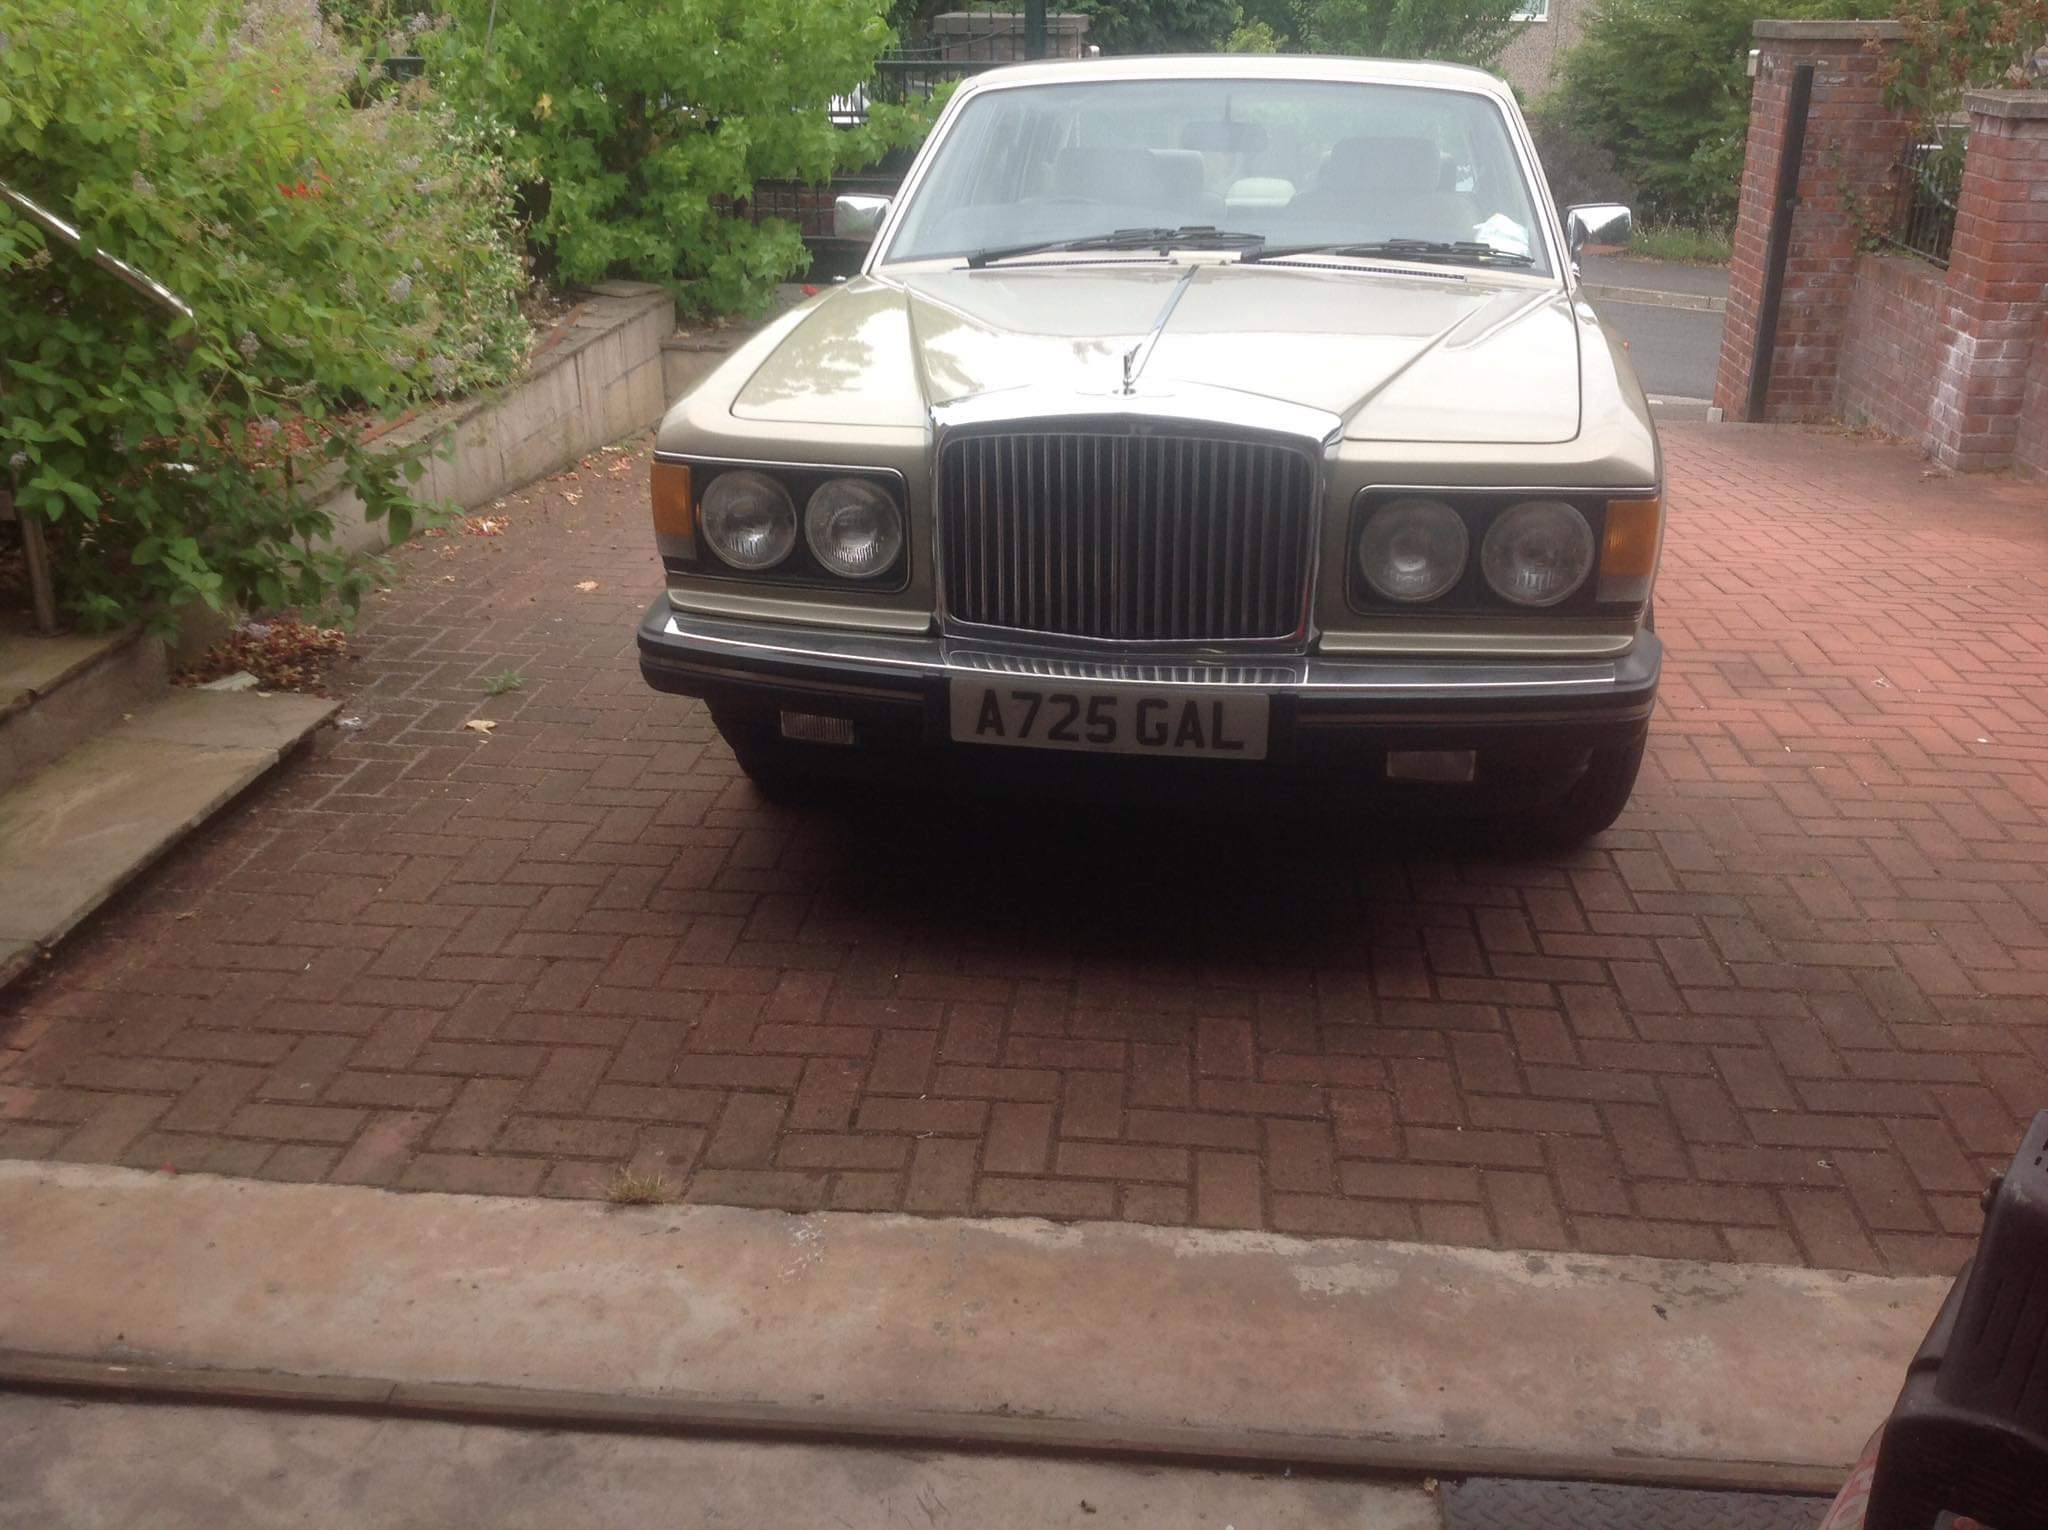 1983 Bentley Mulsanne with Turbo Engine For Sale (picture 2 of 10)